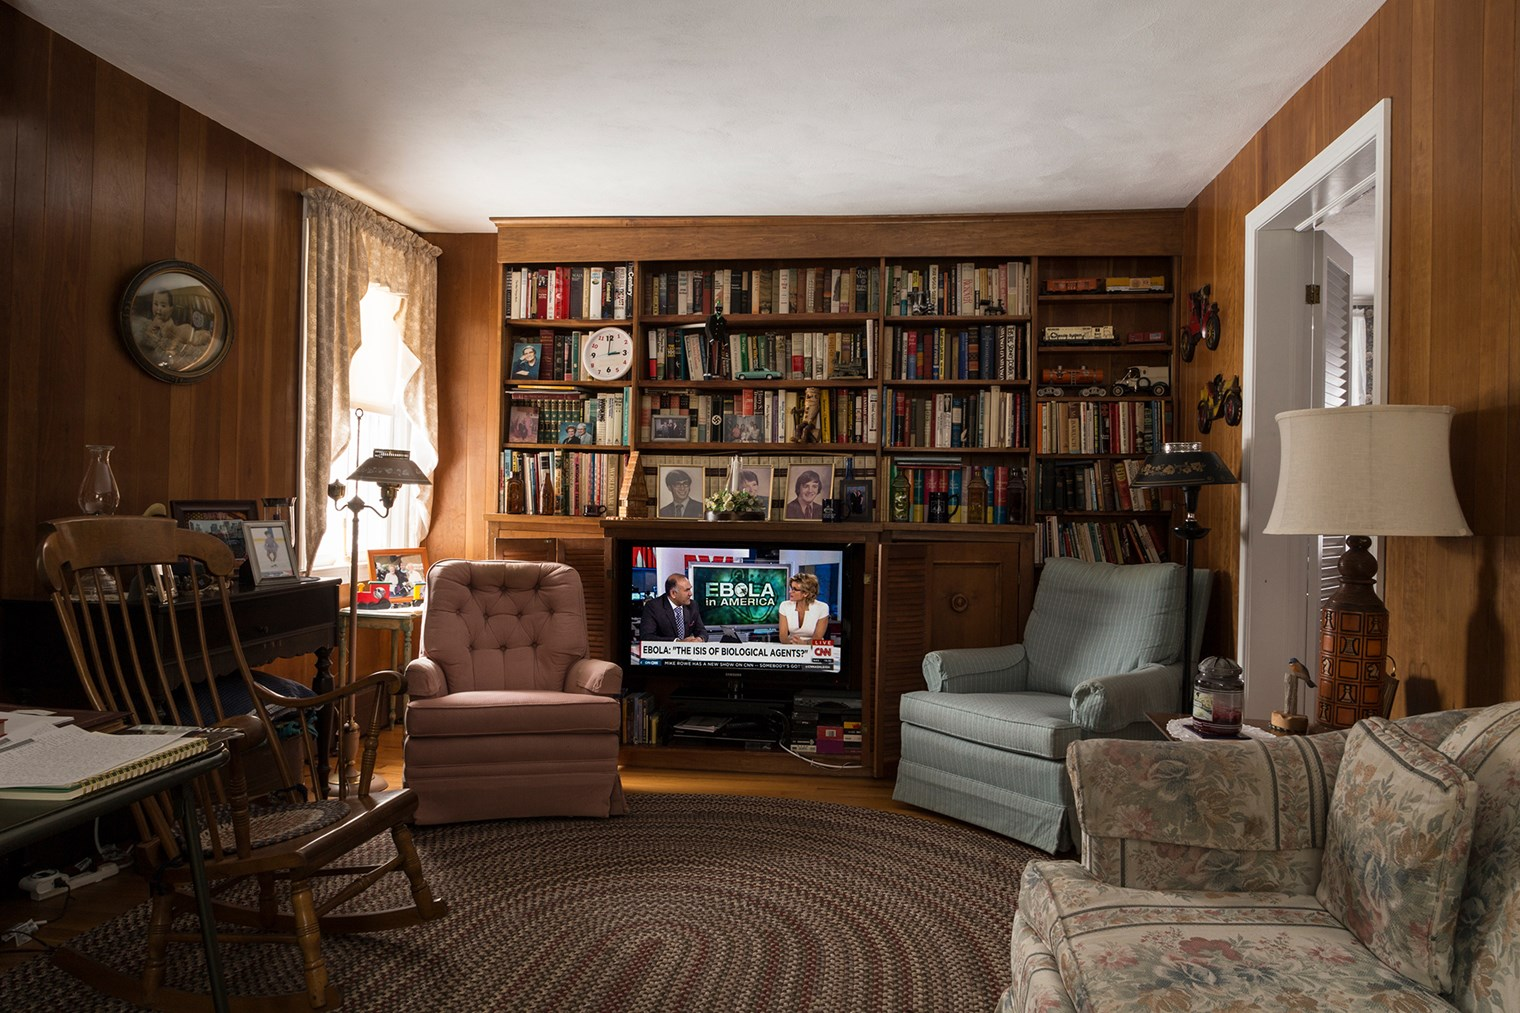 Grandma's TV Room, October 2014